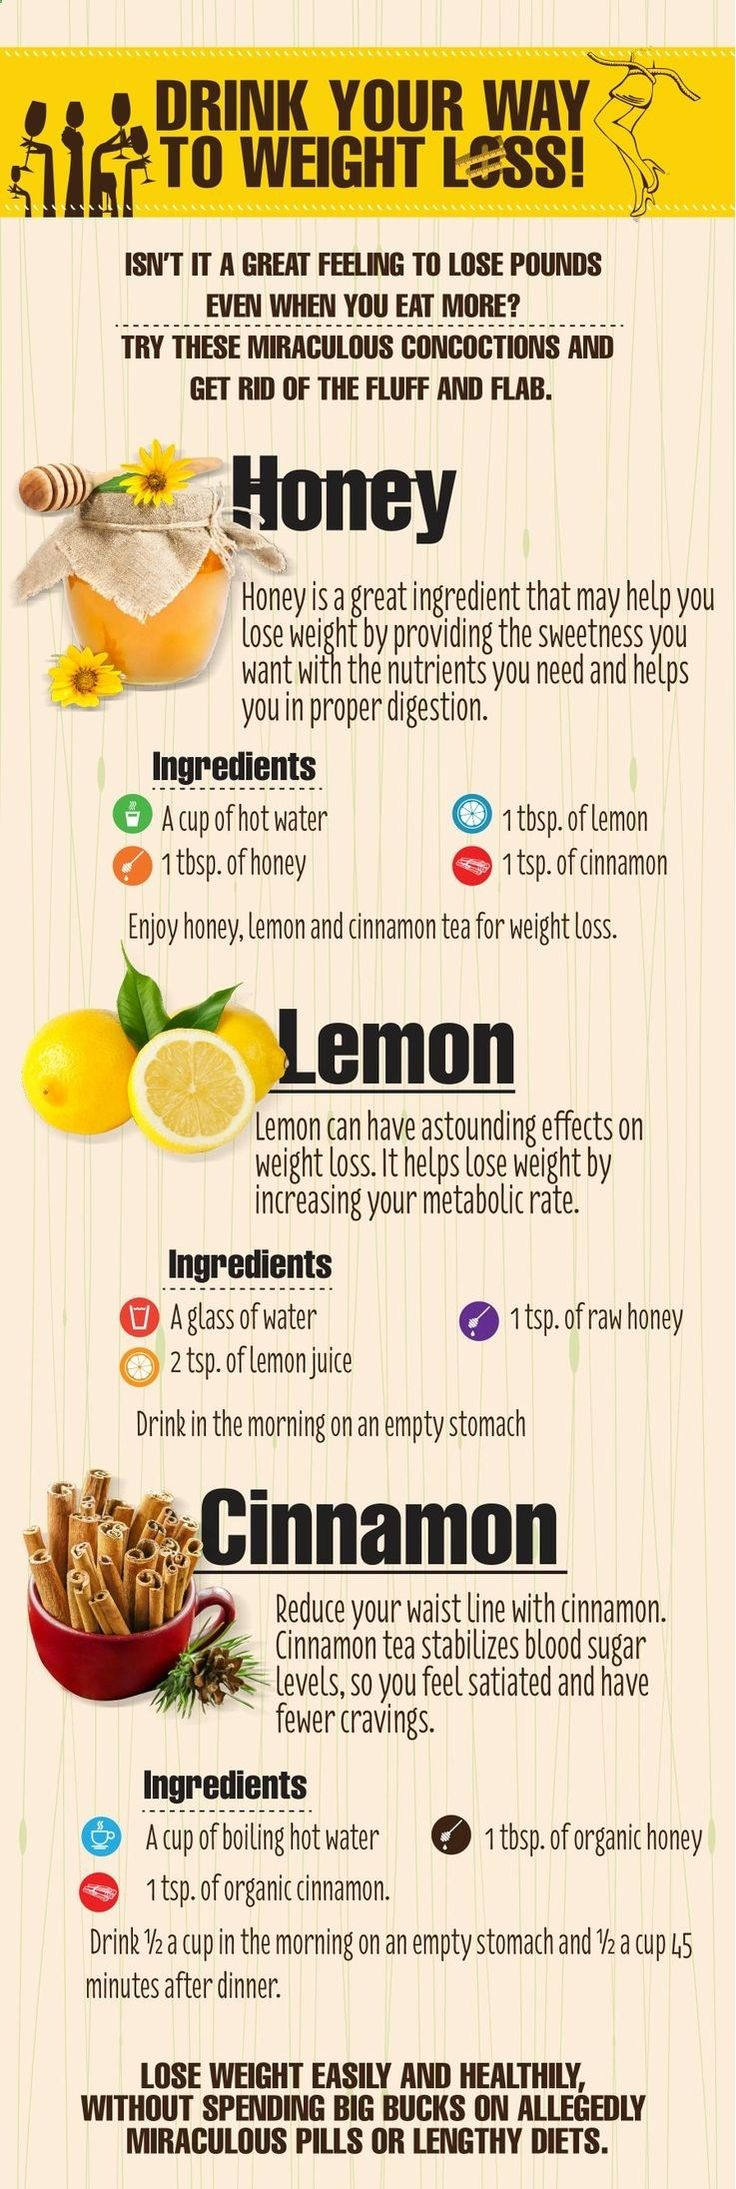 Theres A Reason You Feel Burnt Out And Exhausted All The Time! Detox your body now...